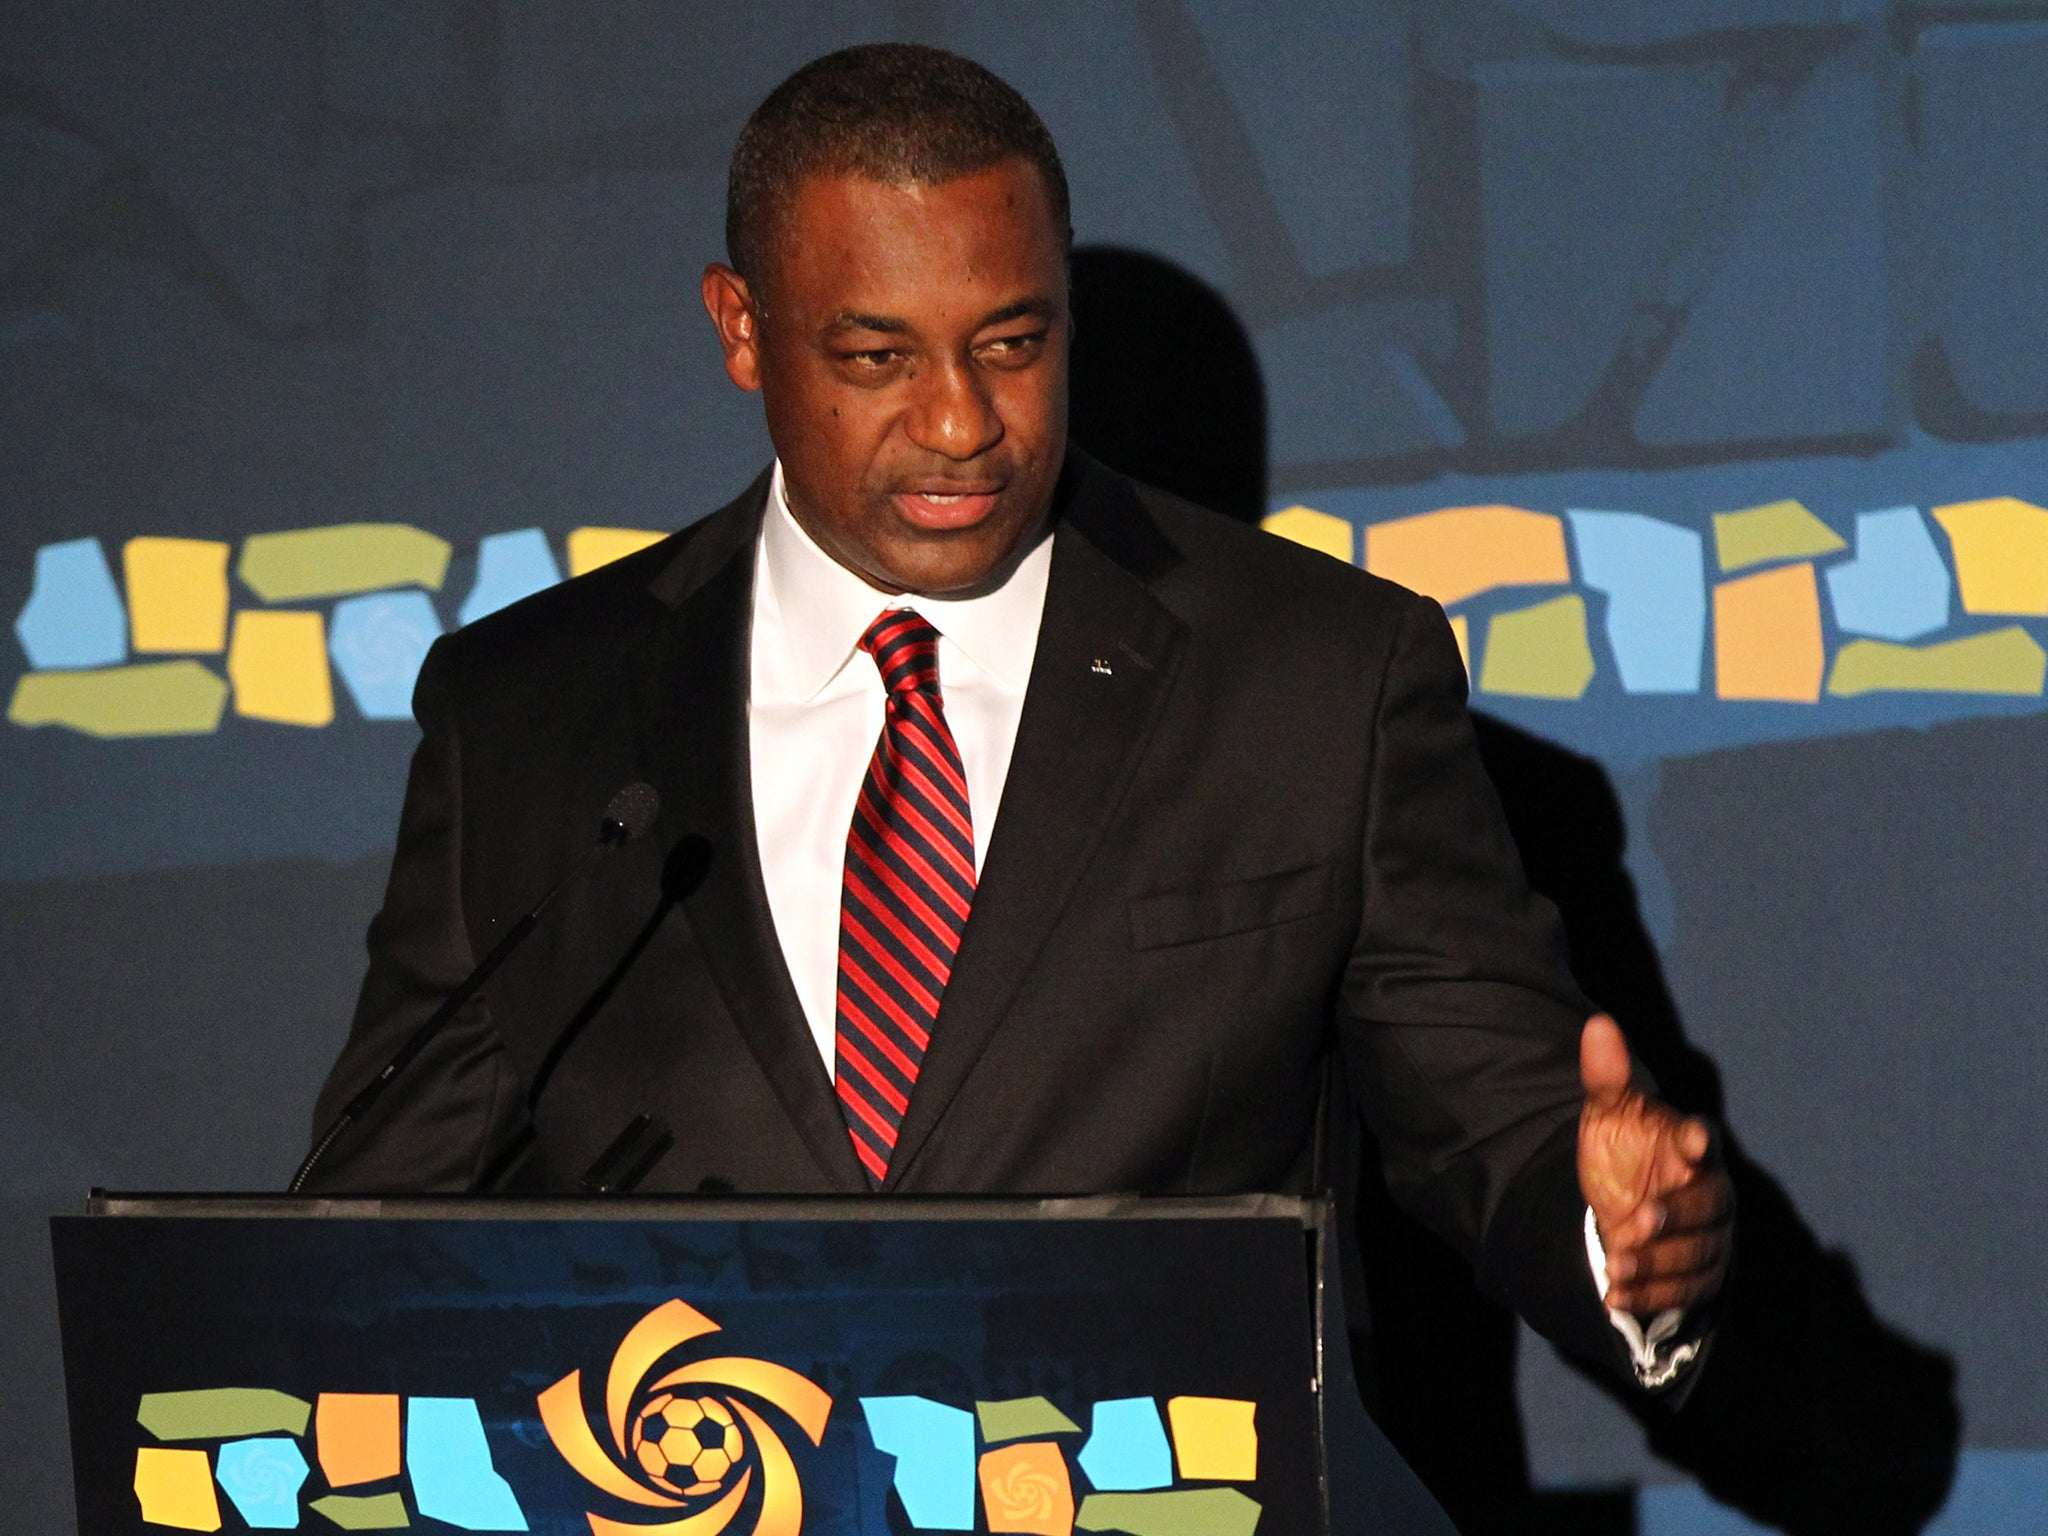 Watch Jeffrey Webb praise Fifa's 'democratic process' hours before being arrested on corruption charges